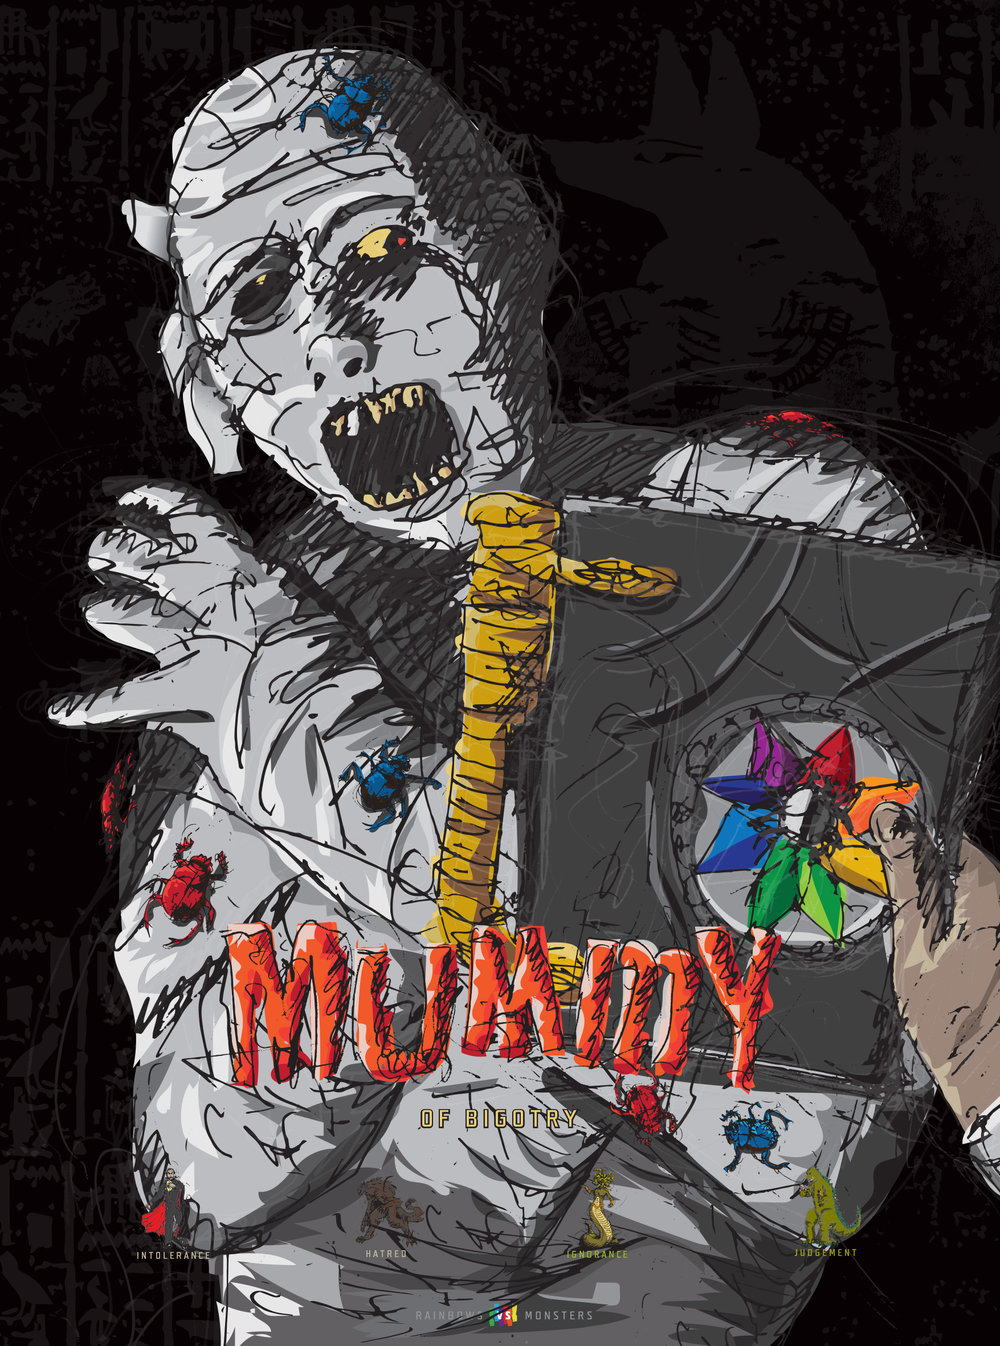 Mummy of Bigotry. One in a series of posters Rainbows vs. Monsters) promoting LGBTQ tolerance